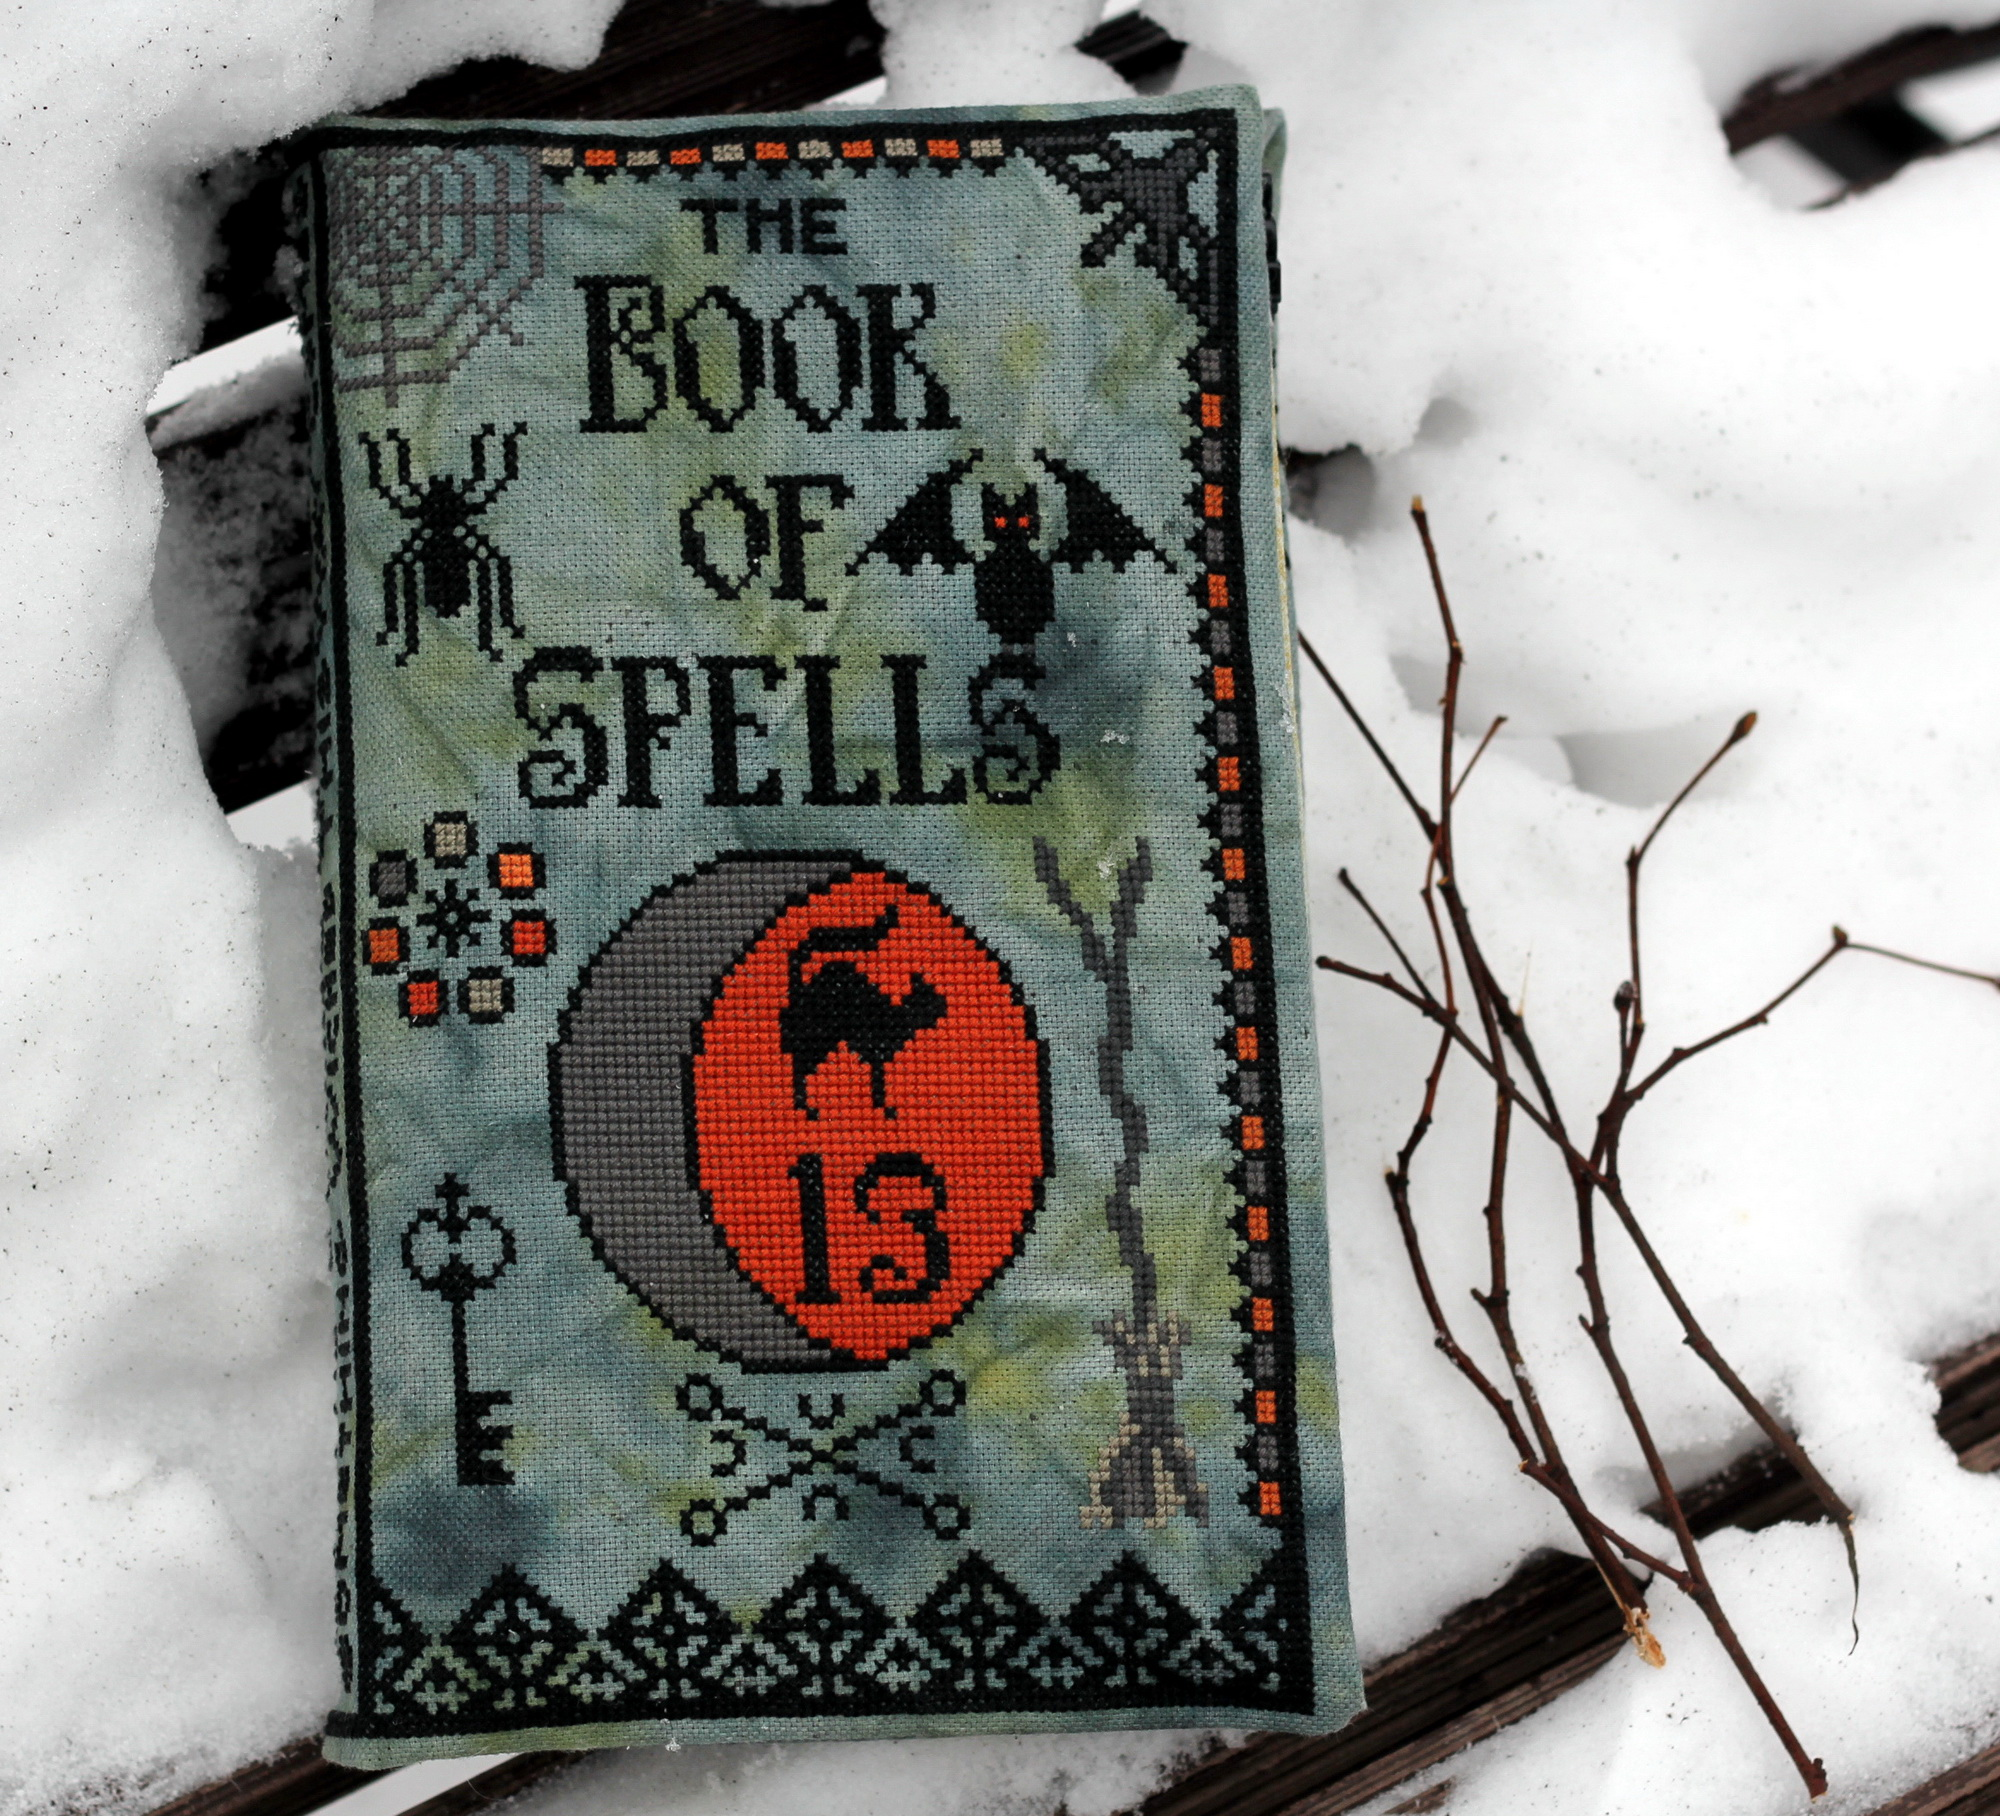 The Book of Spells - The Goode Huswife.